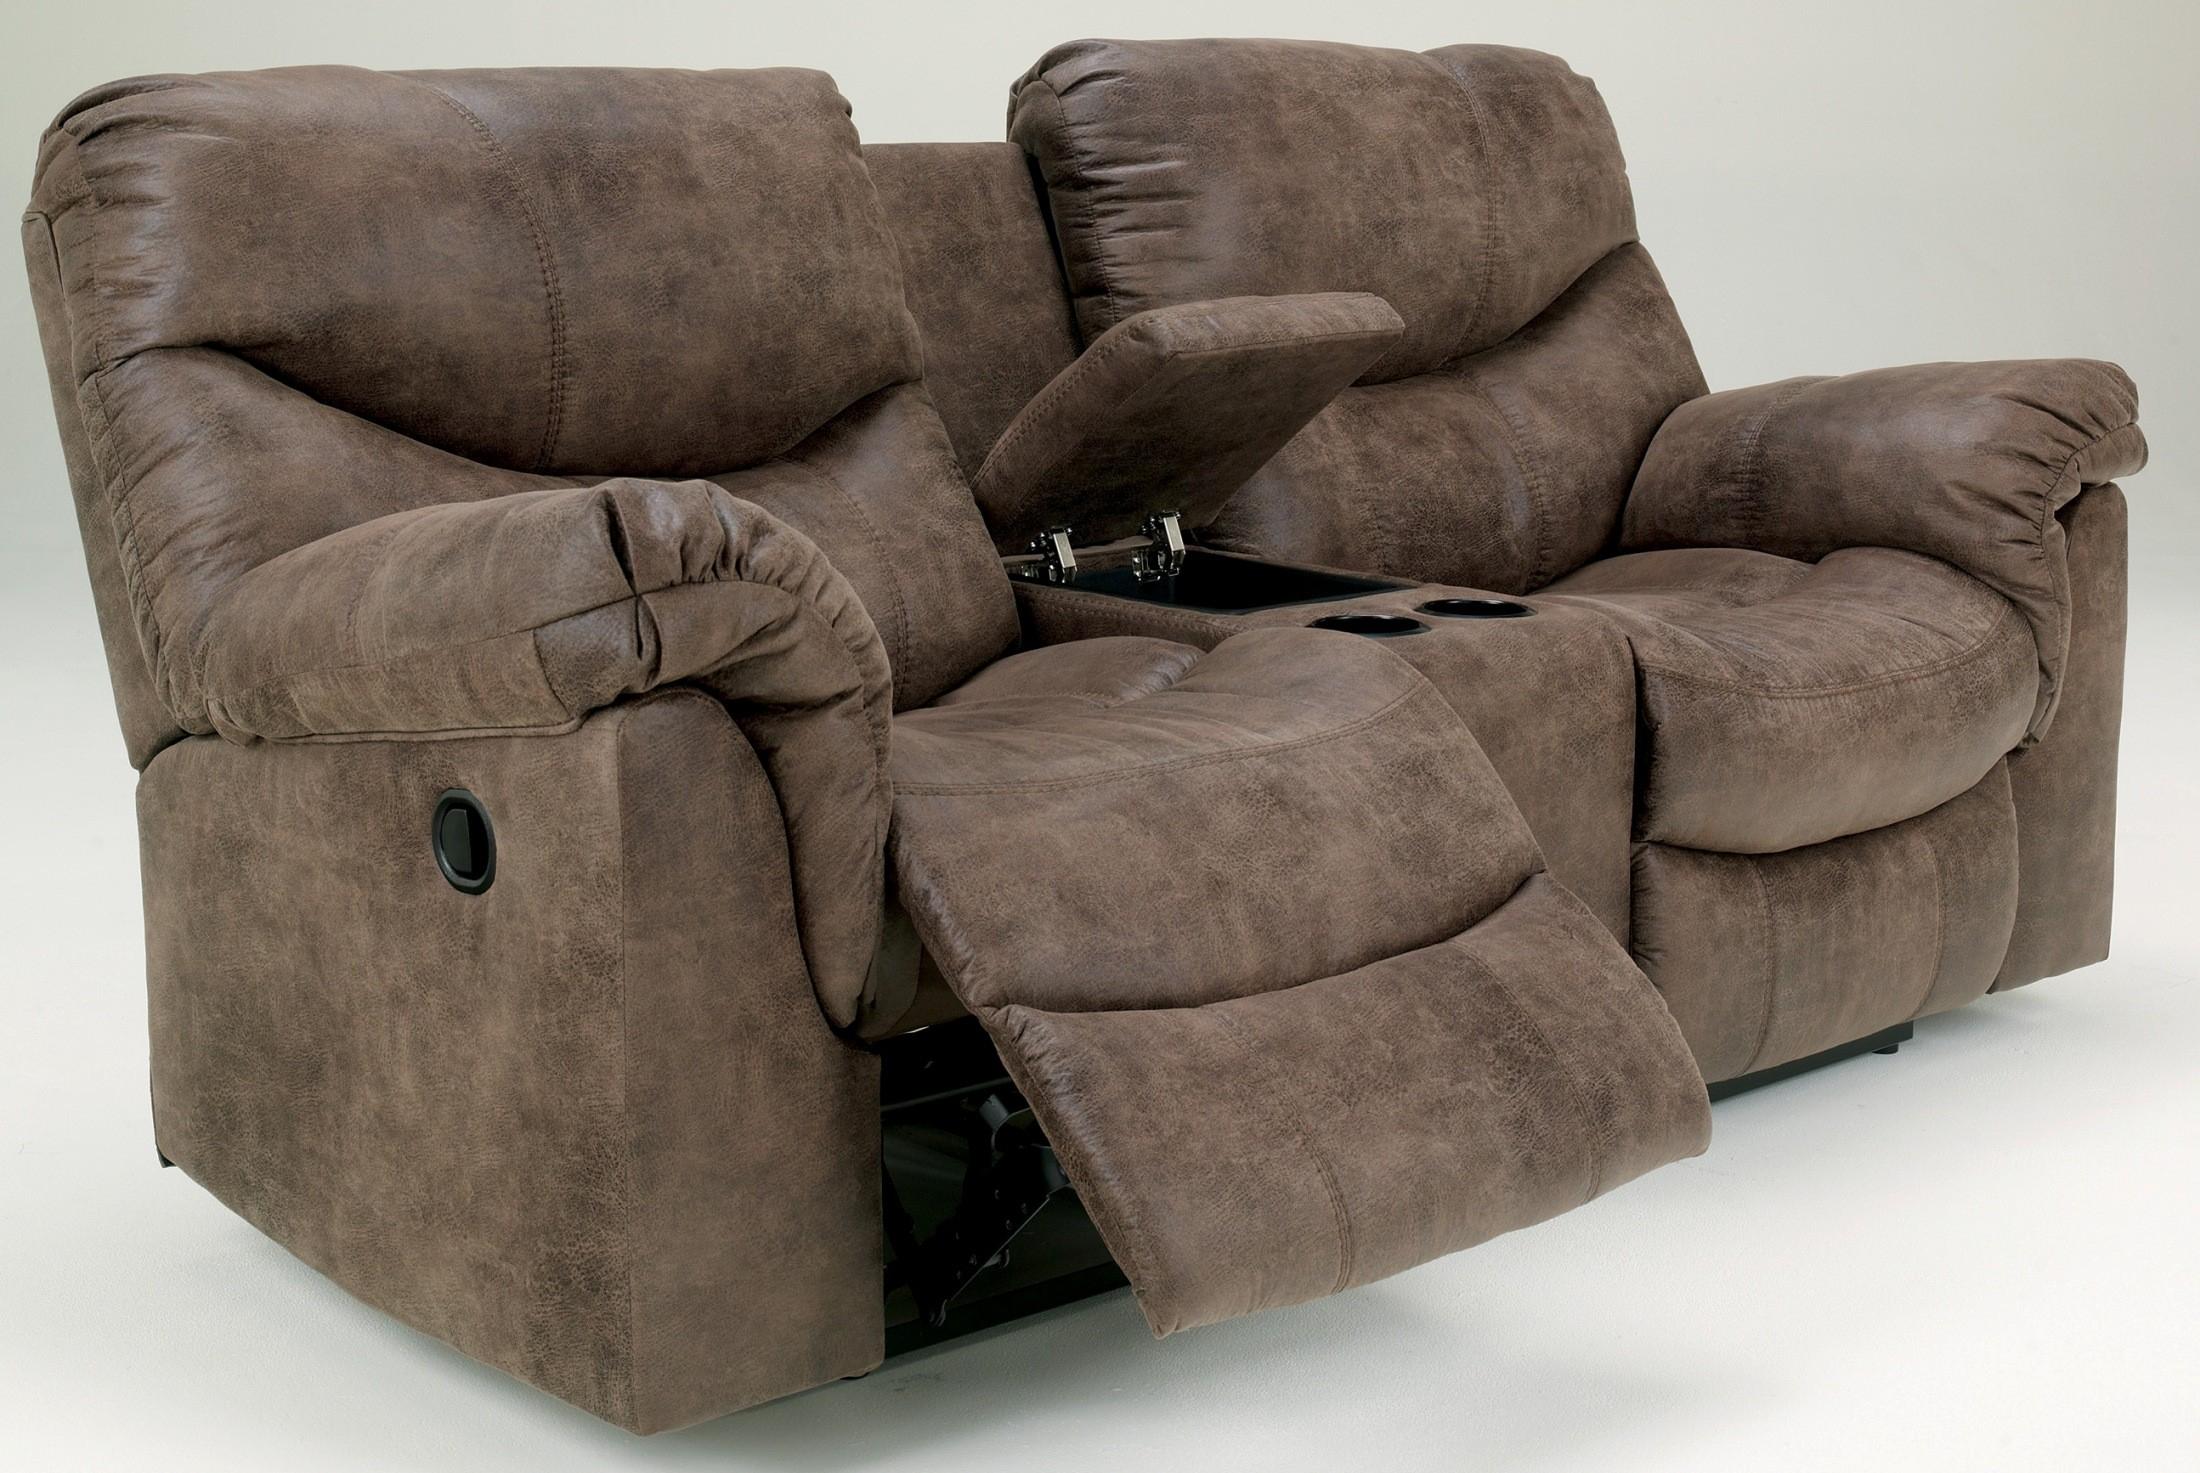 273521 & Alzena Double Power Reclining Loveseat with Console from Ashley ... islam-shia.org